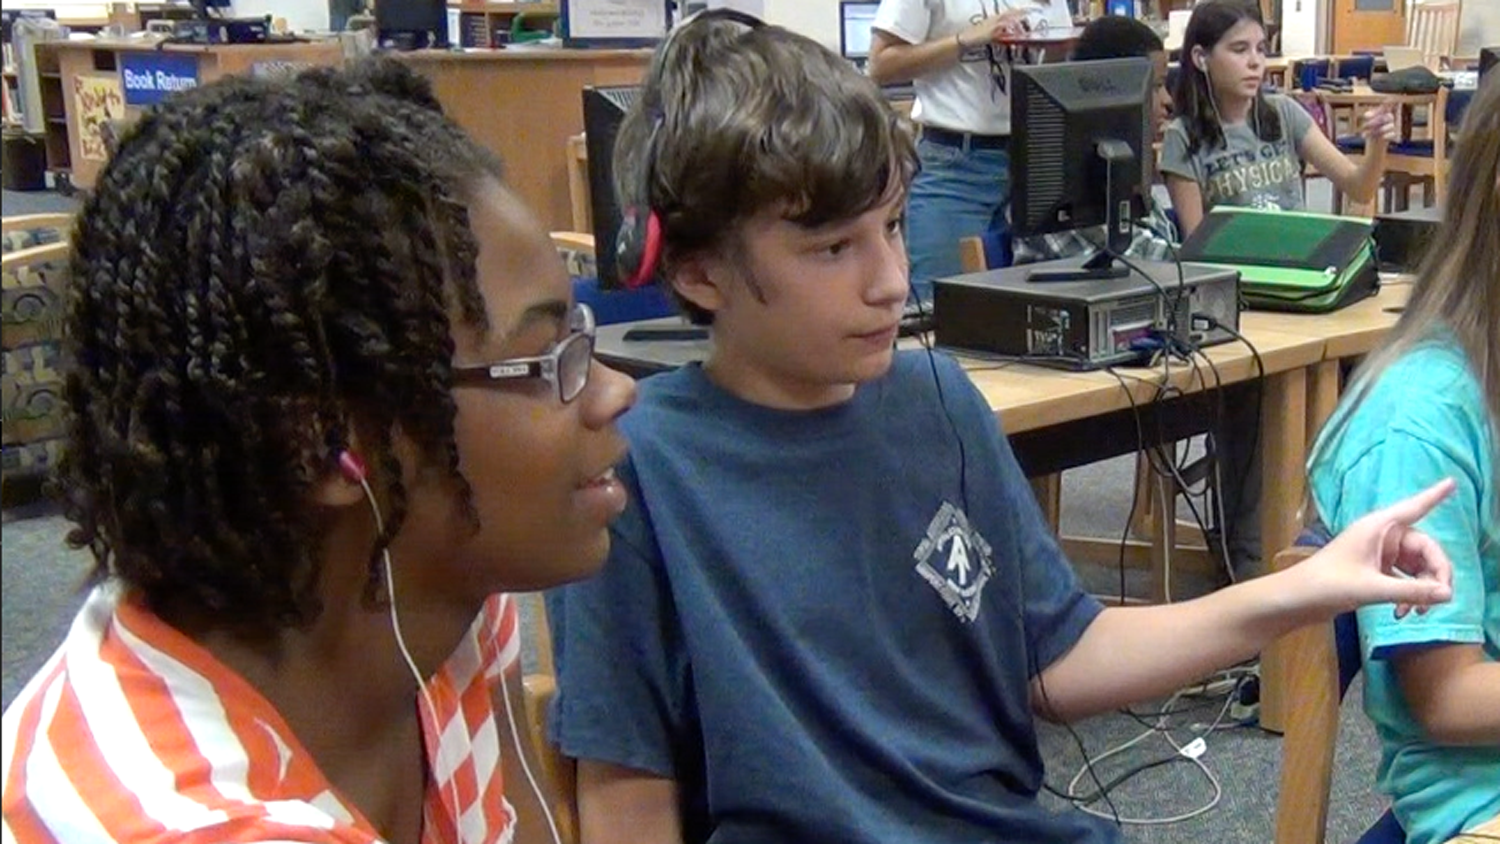 Students at Reedy Creek Middle School interacting with Wiebe's computer game.